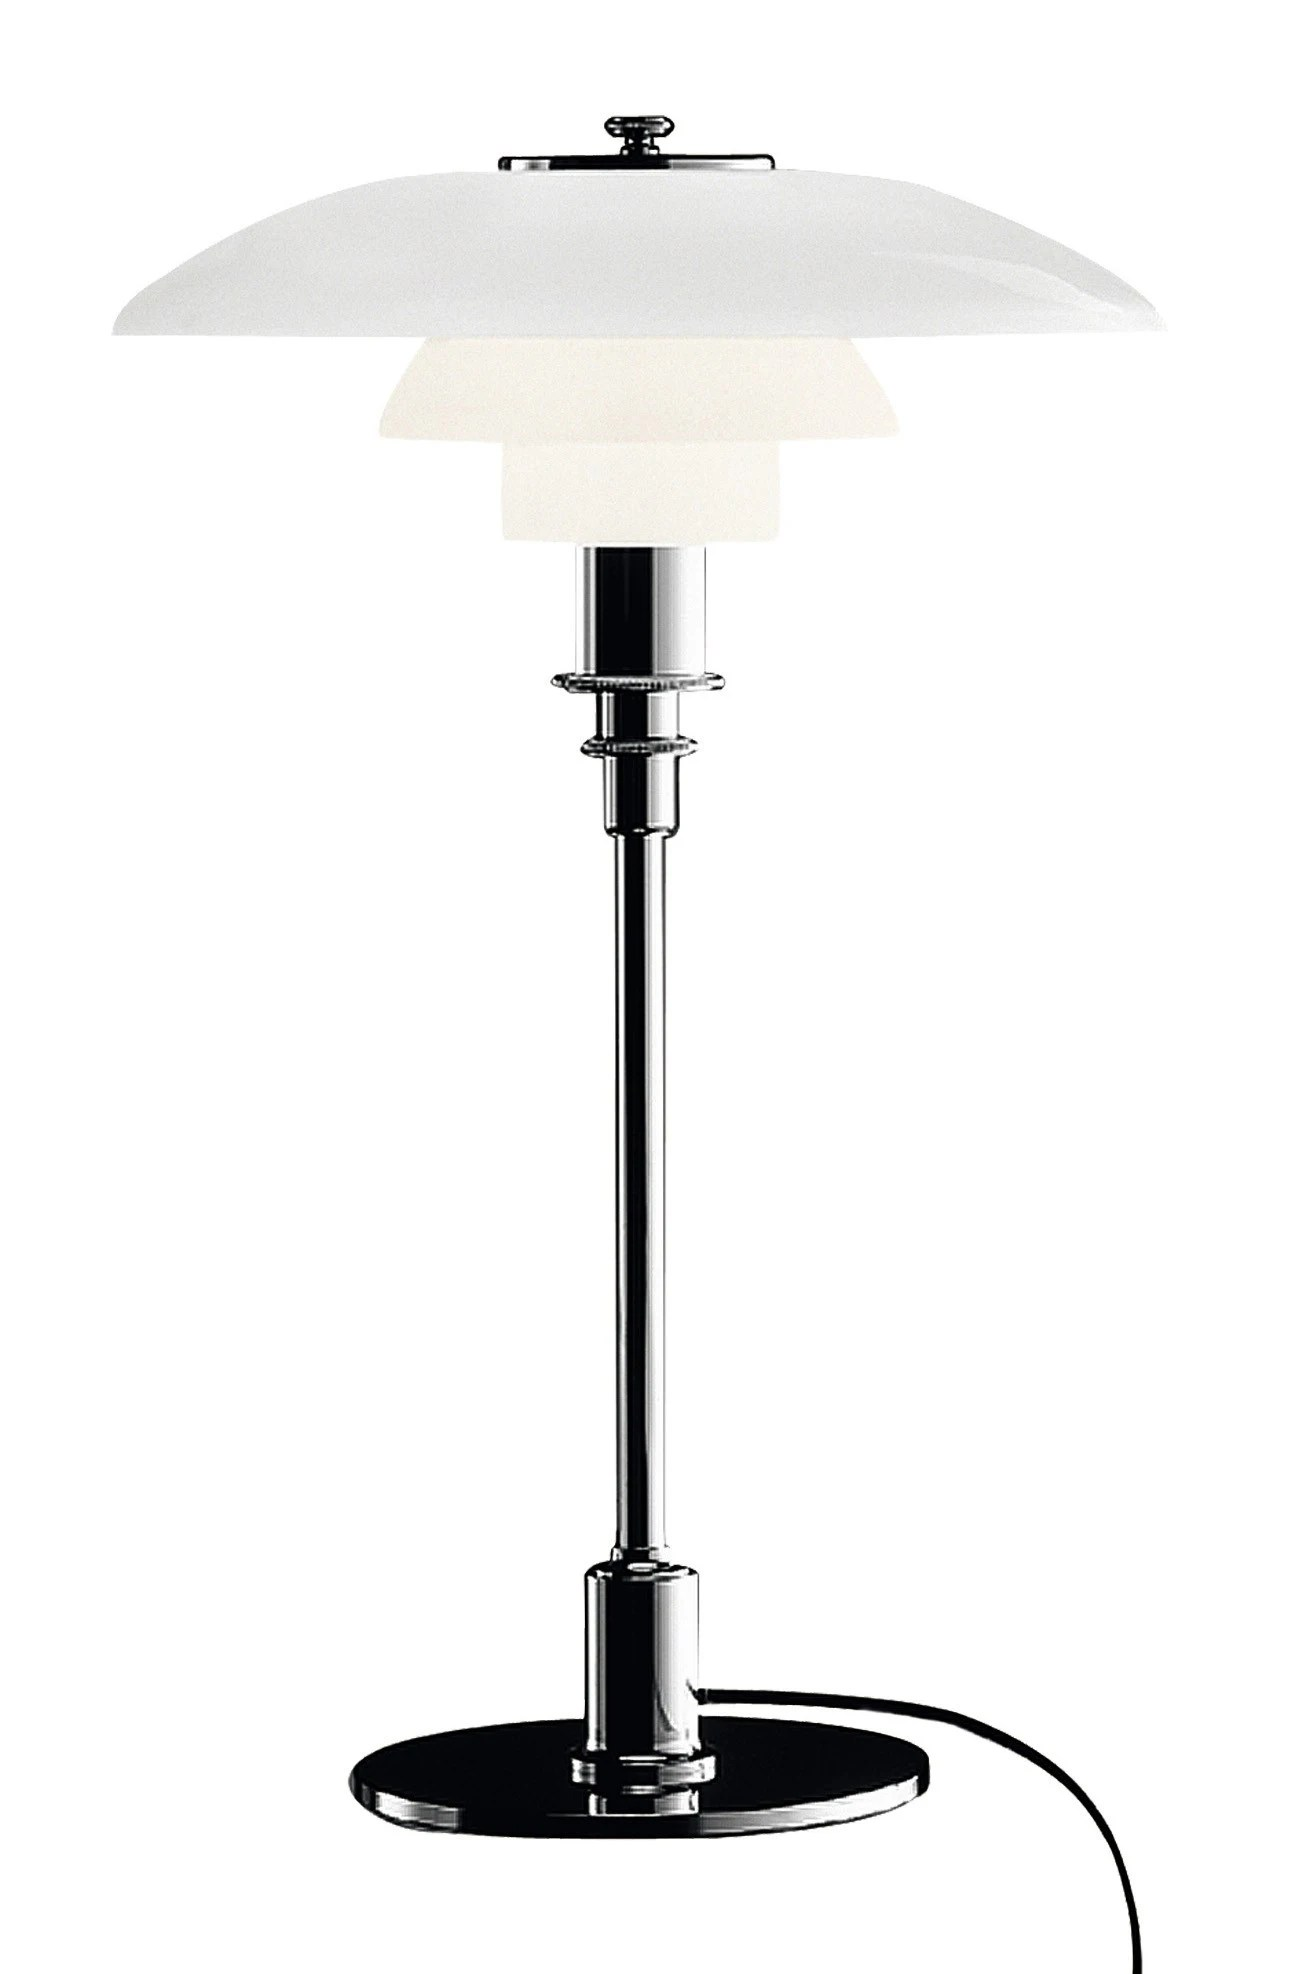 Louis Poulsen Ph 3 2 Louis Poulsen Ph 3 2 Table Lamp